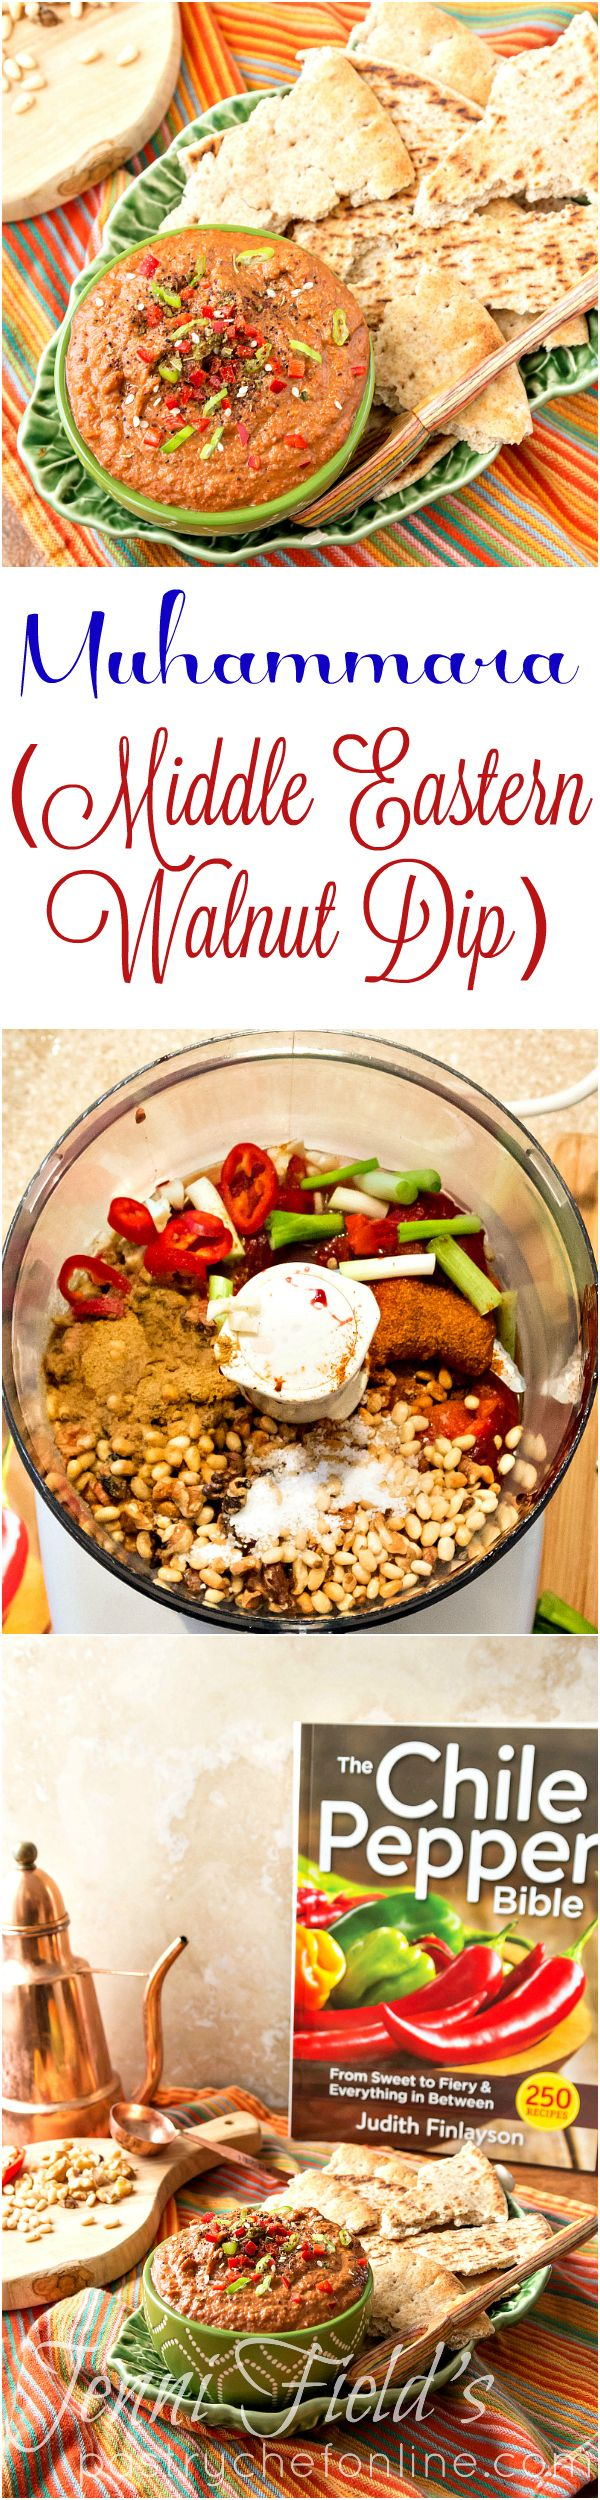 Muhammara, or Middle Eastern Walnut Dip, is easy to make and incredibly flavorful. With roasted red pepper, garlic, pomegranate molasses, toasted walnuts and more, muhammara is nutritious and perfect for dipping pita or vegetables or even used as a tangy